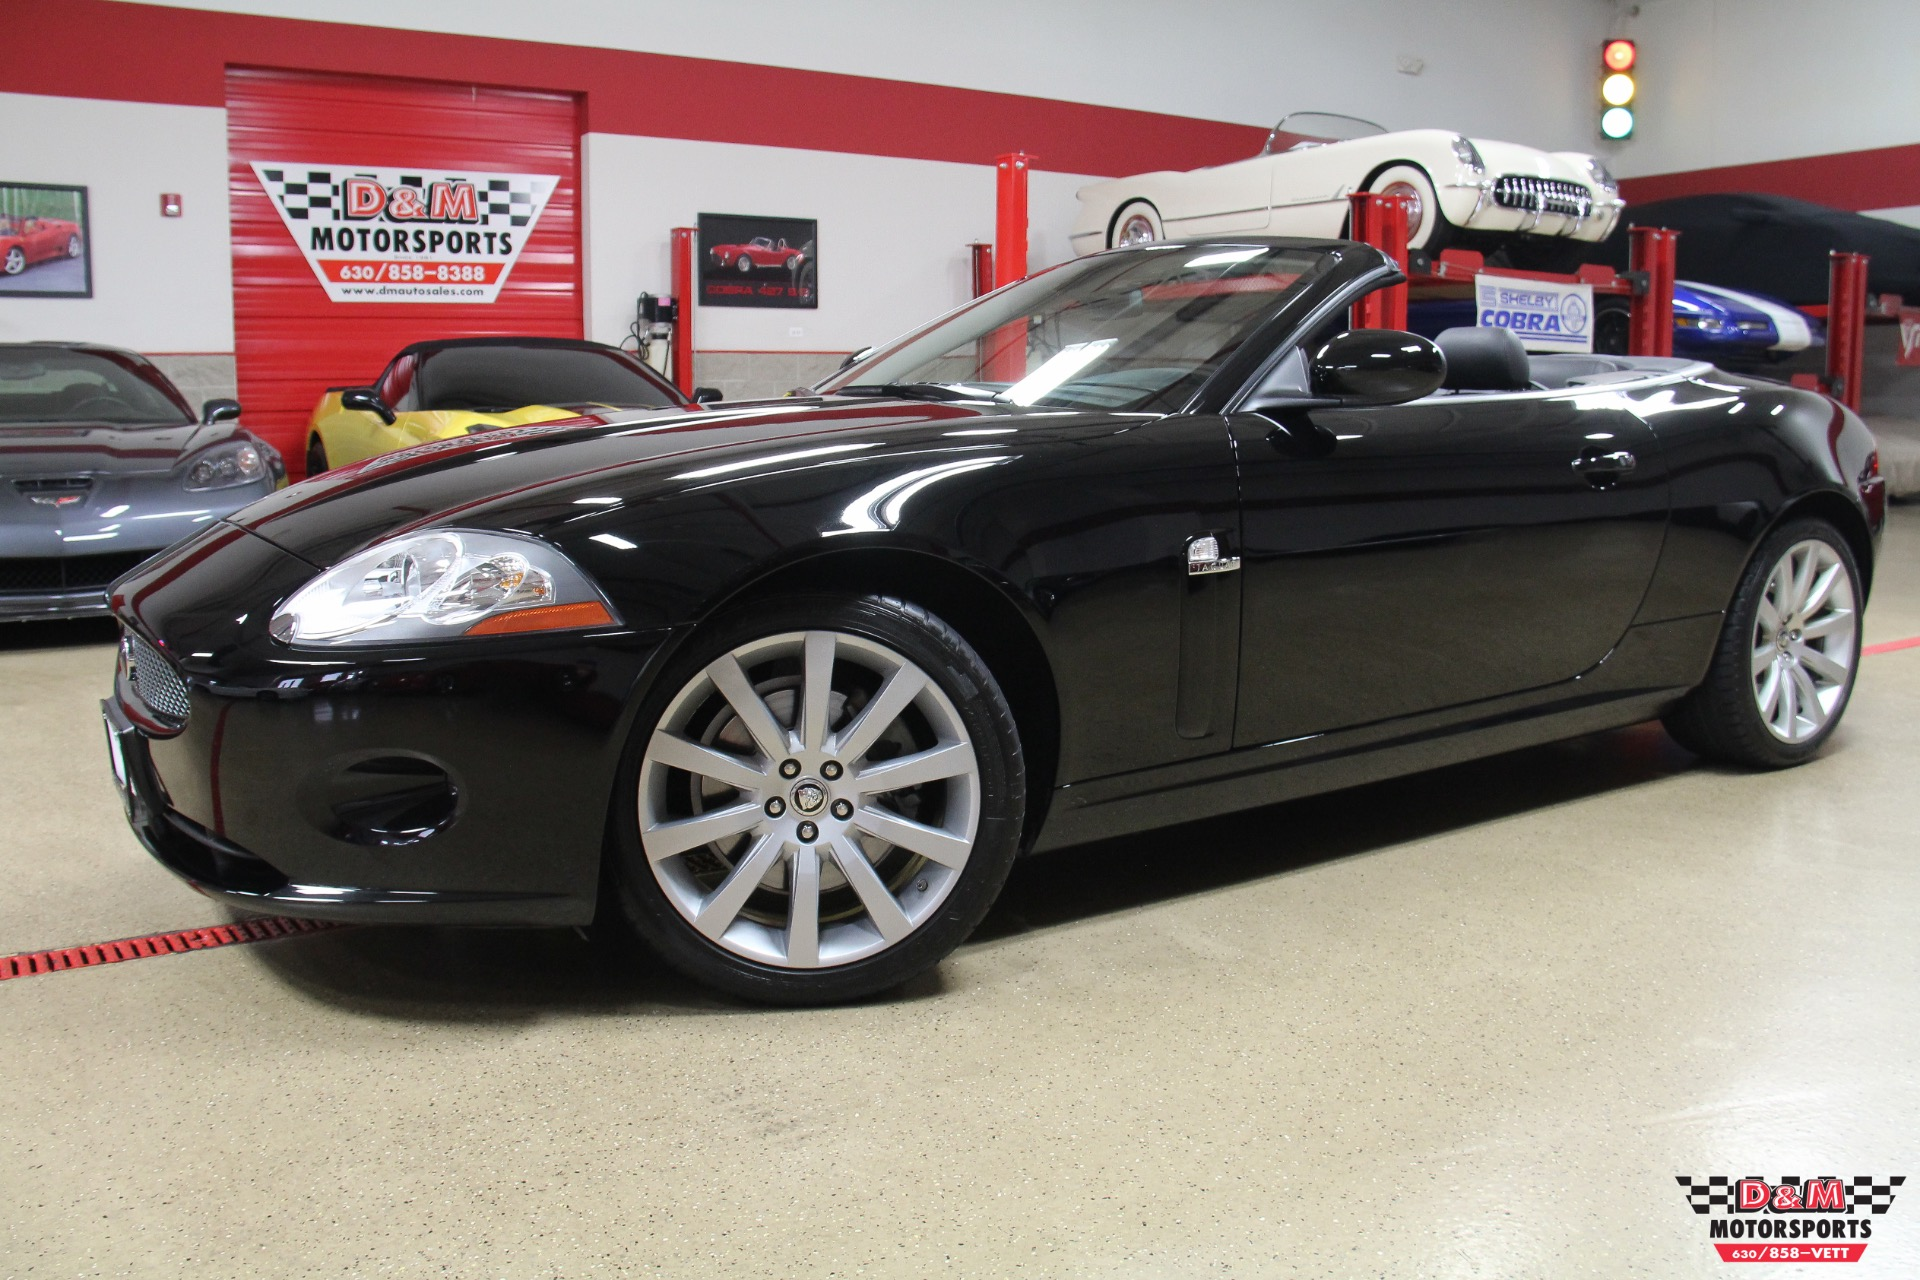 yorkshire dealer jaguar exceptional cars convertible history for xk in ivory full blue with main classifieds xkr pistonheads example south used supercharged kyanite sale